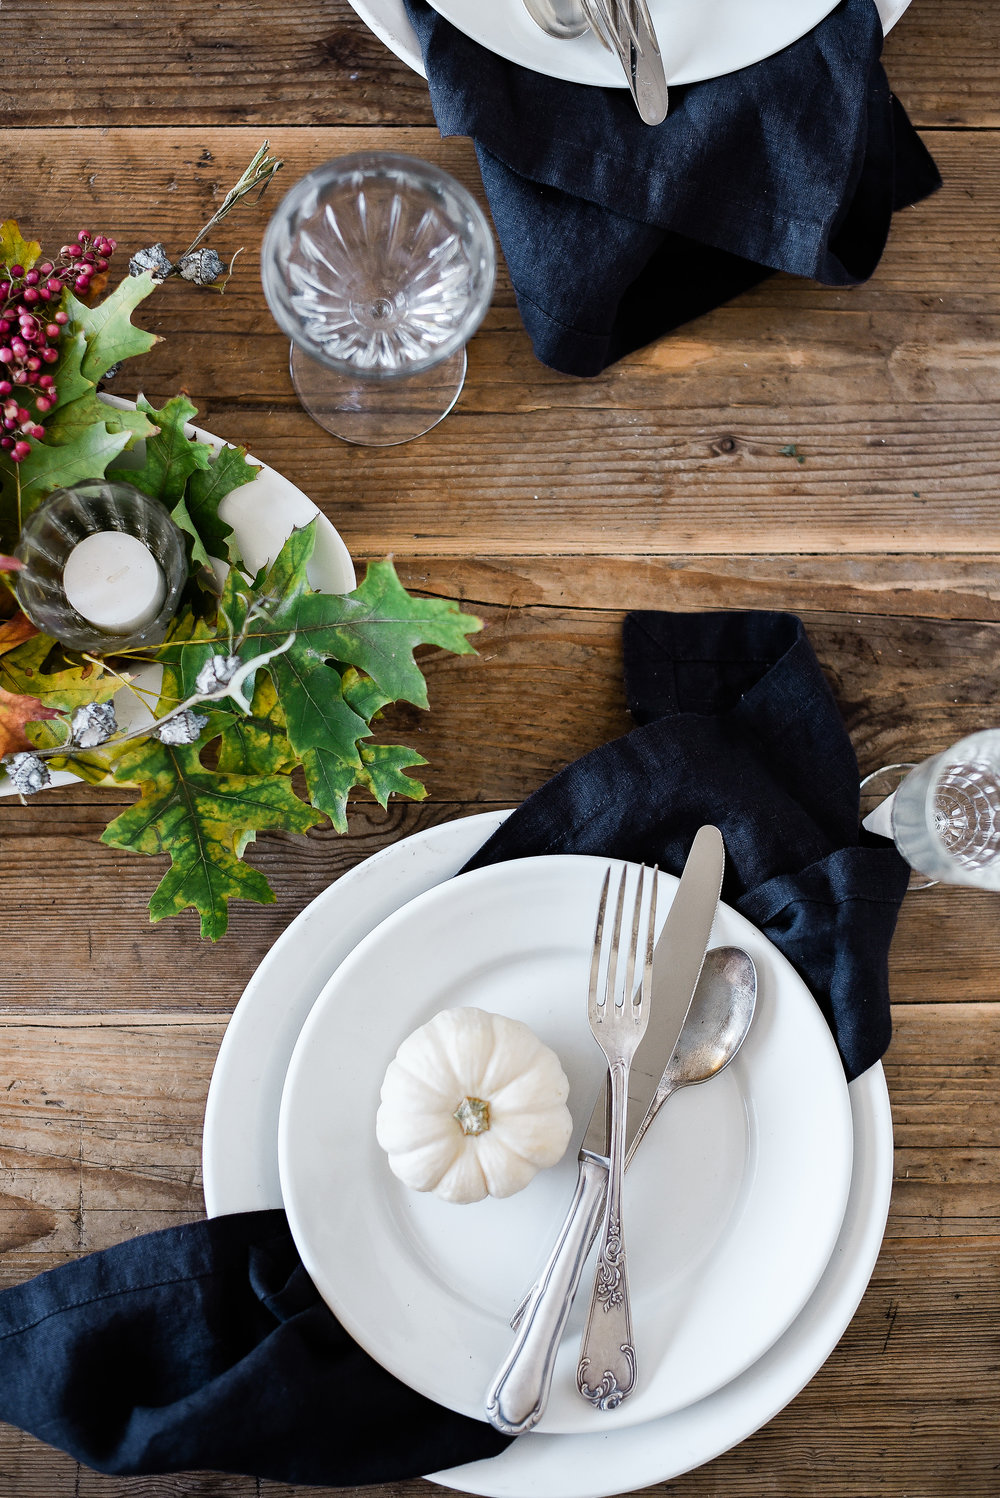 Thanksgiving tablescape ideas from Boxwood Avenue | #thanksgivingdecor #thanksgivingtablescape